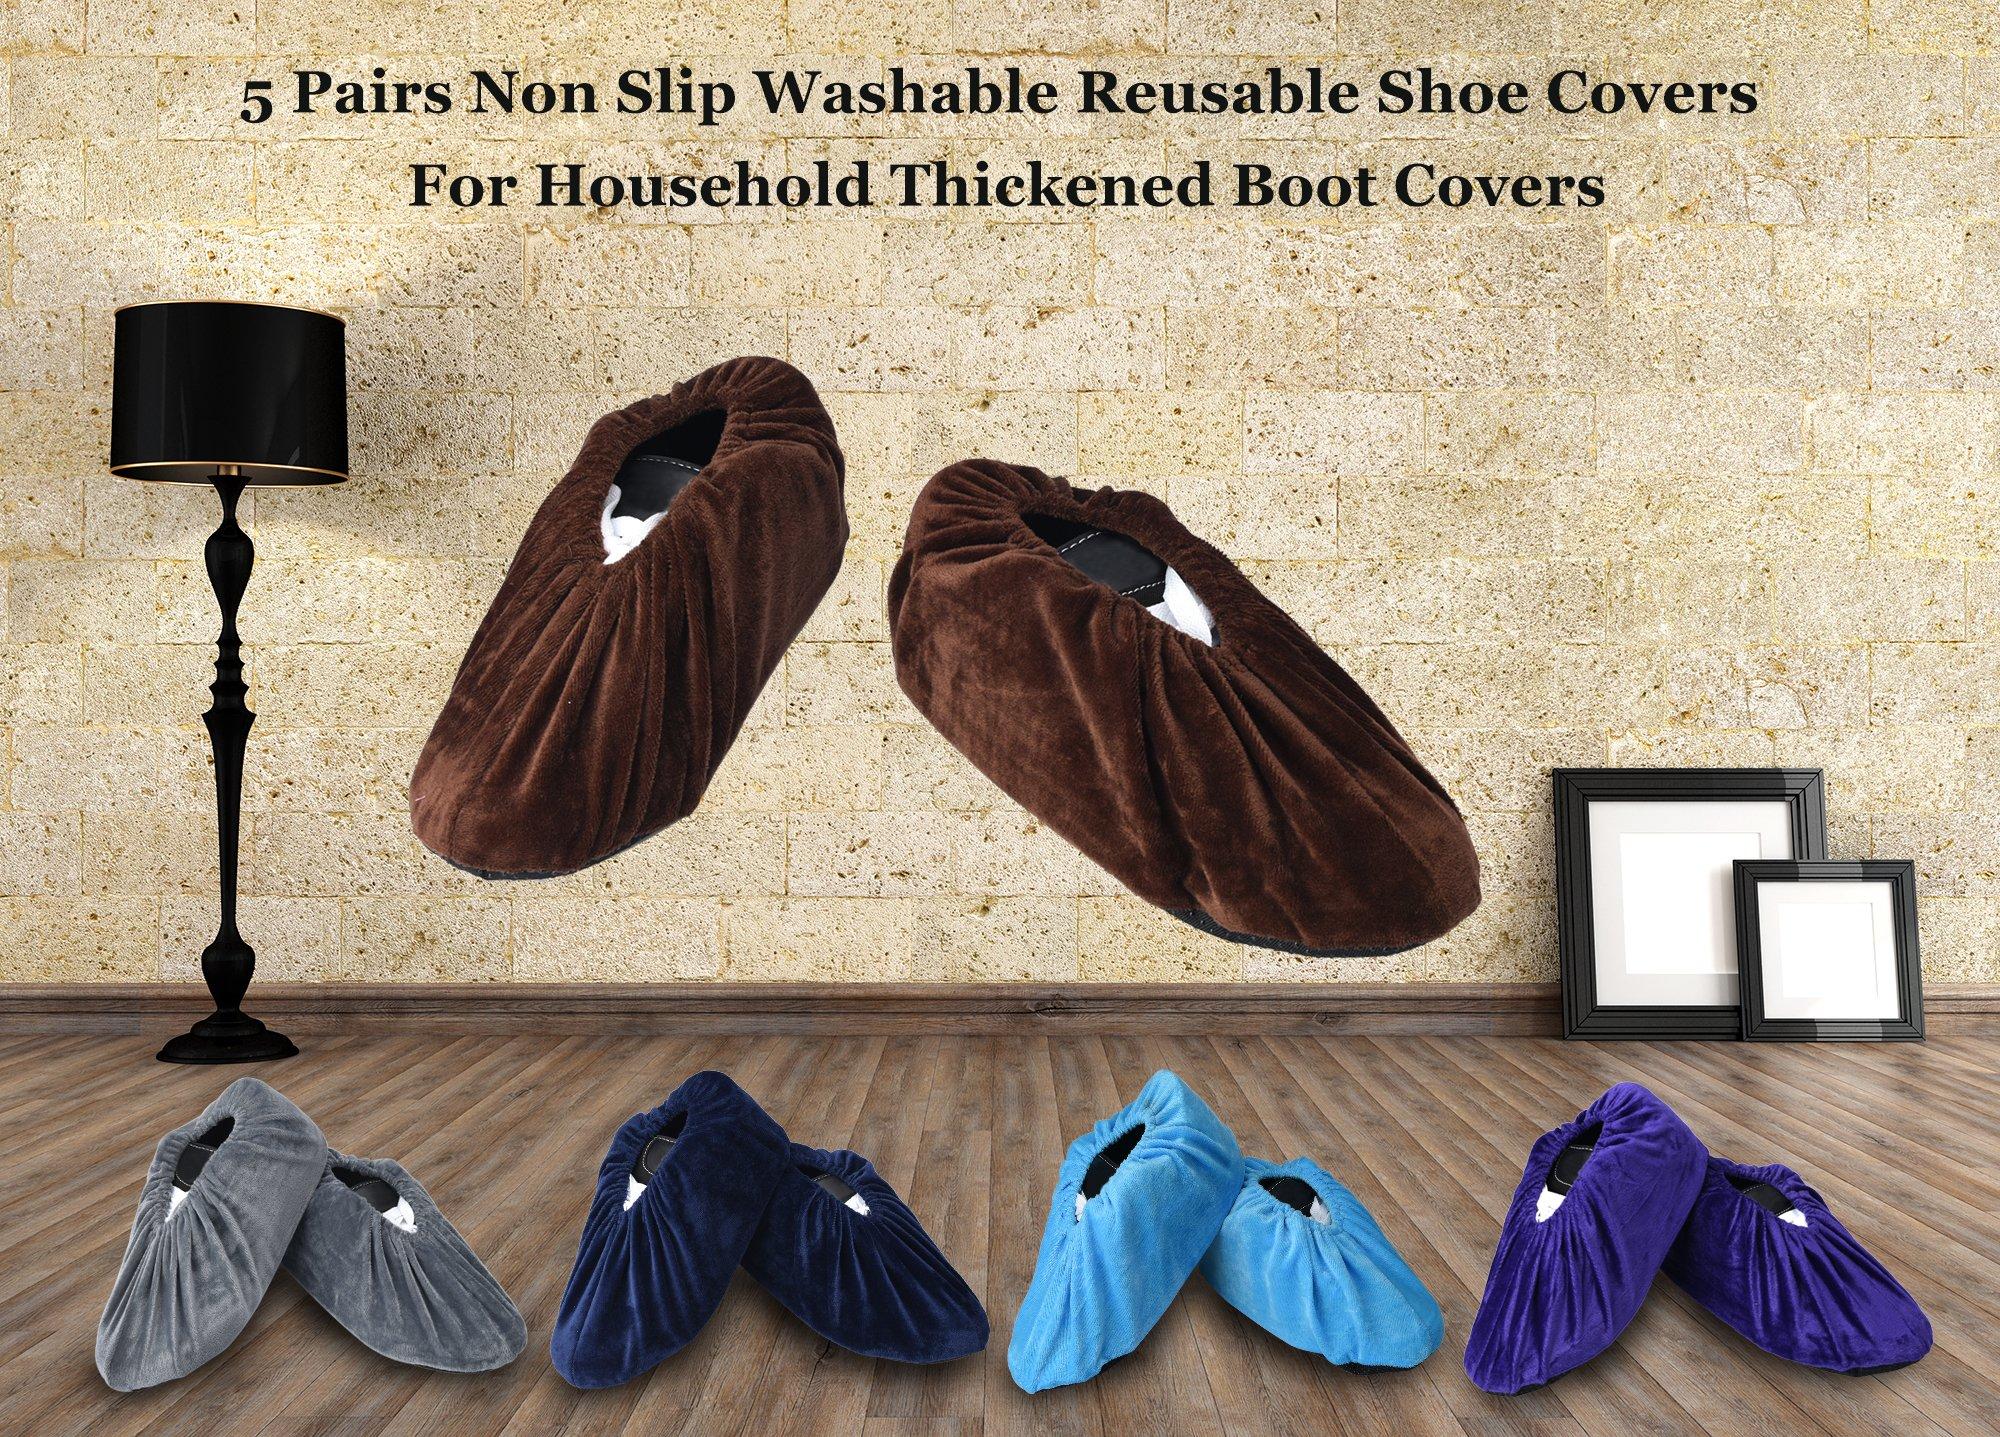 5 Pairs Non Slip Washable Reusable Shoe Covers For Household Thickened Boot Covers by PlasMaller (Image #8)